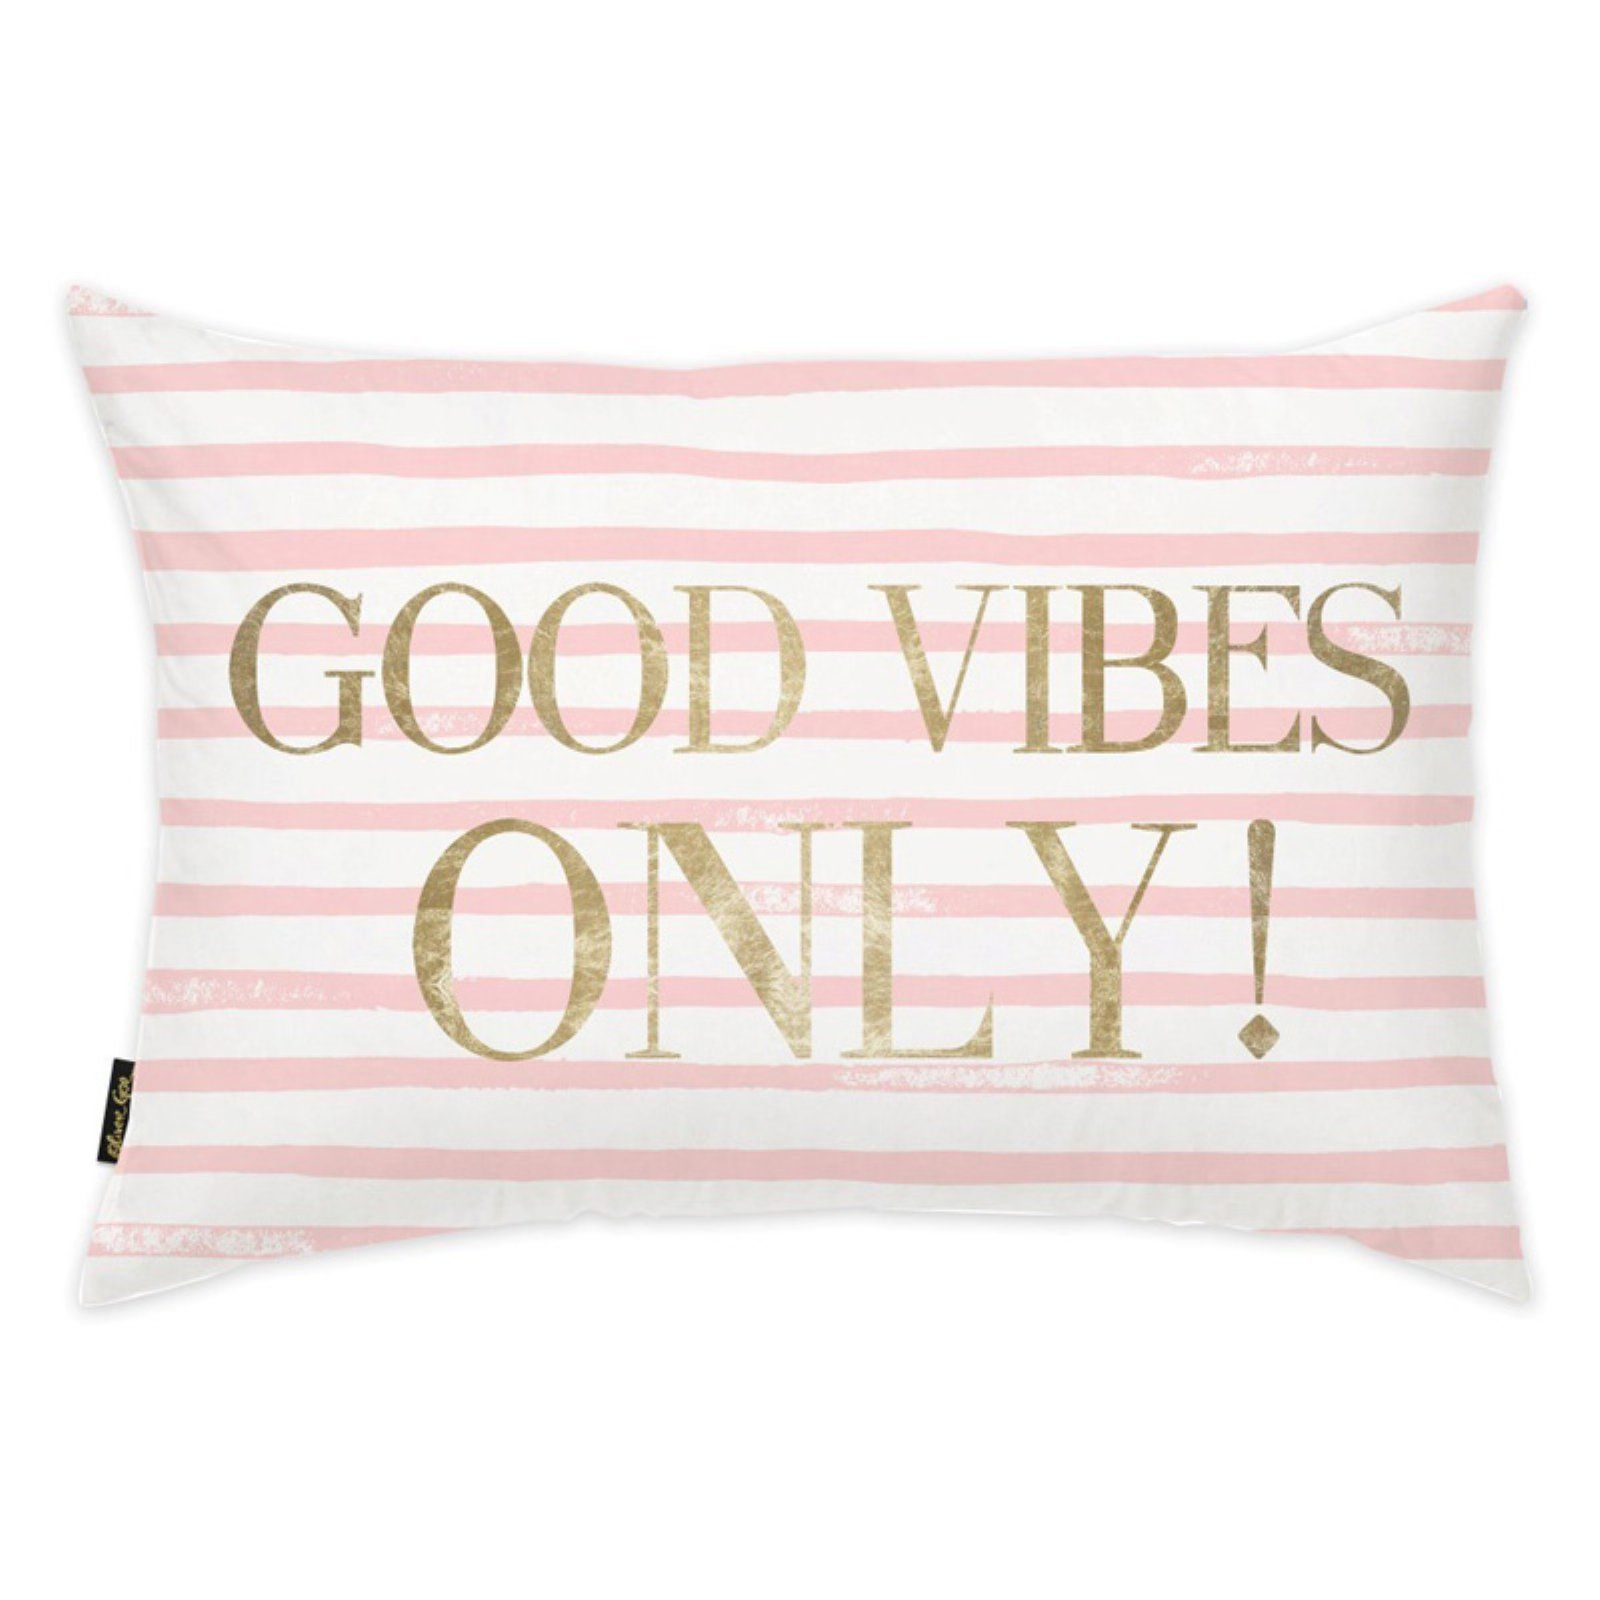 Nothing Bad Here! Throw Pillow